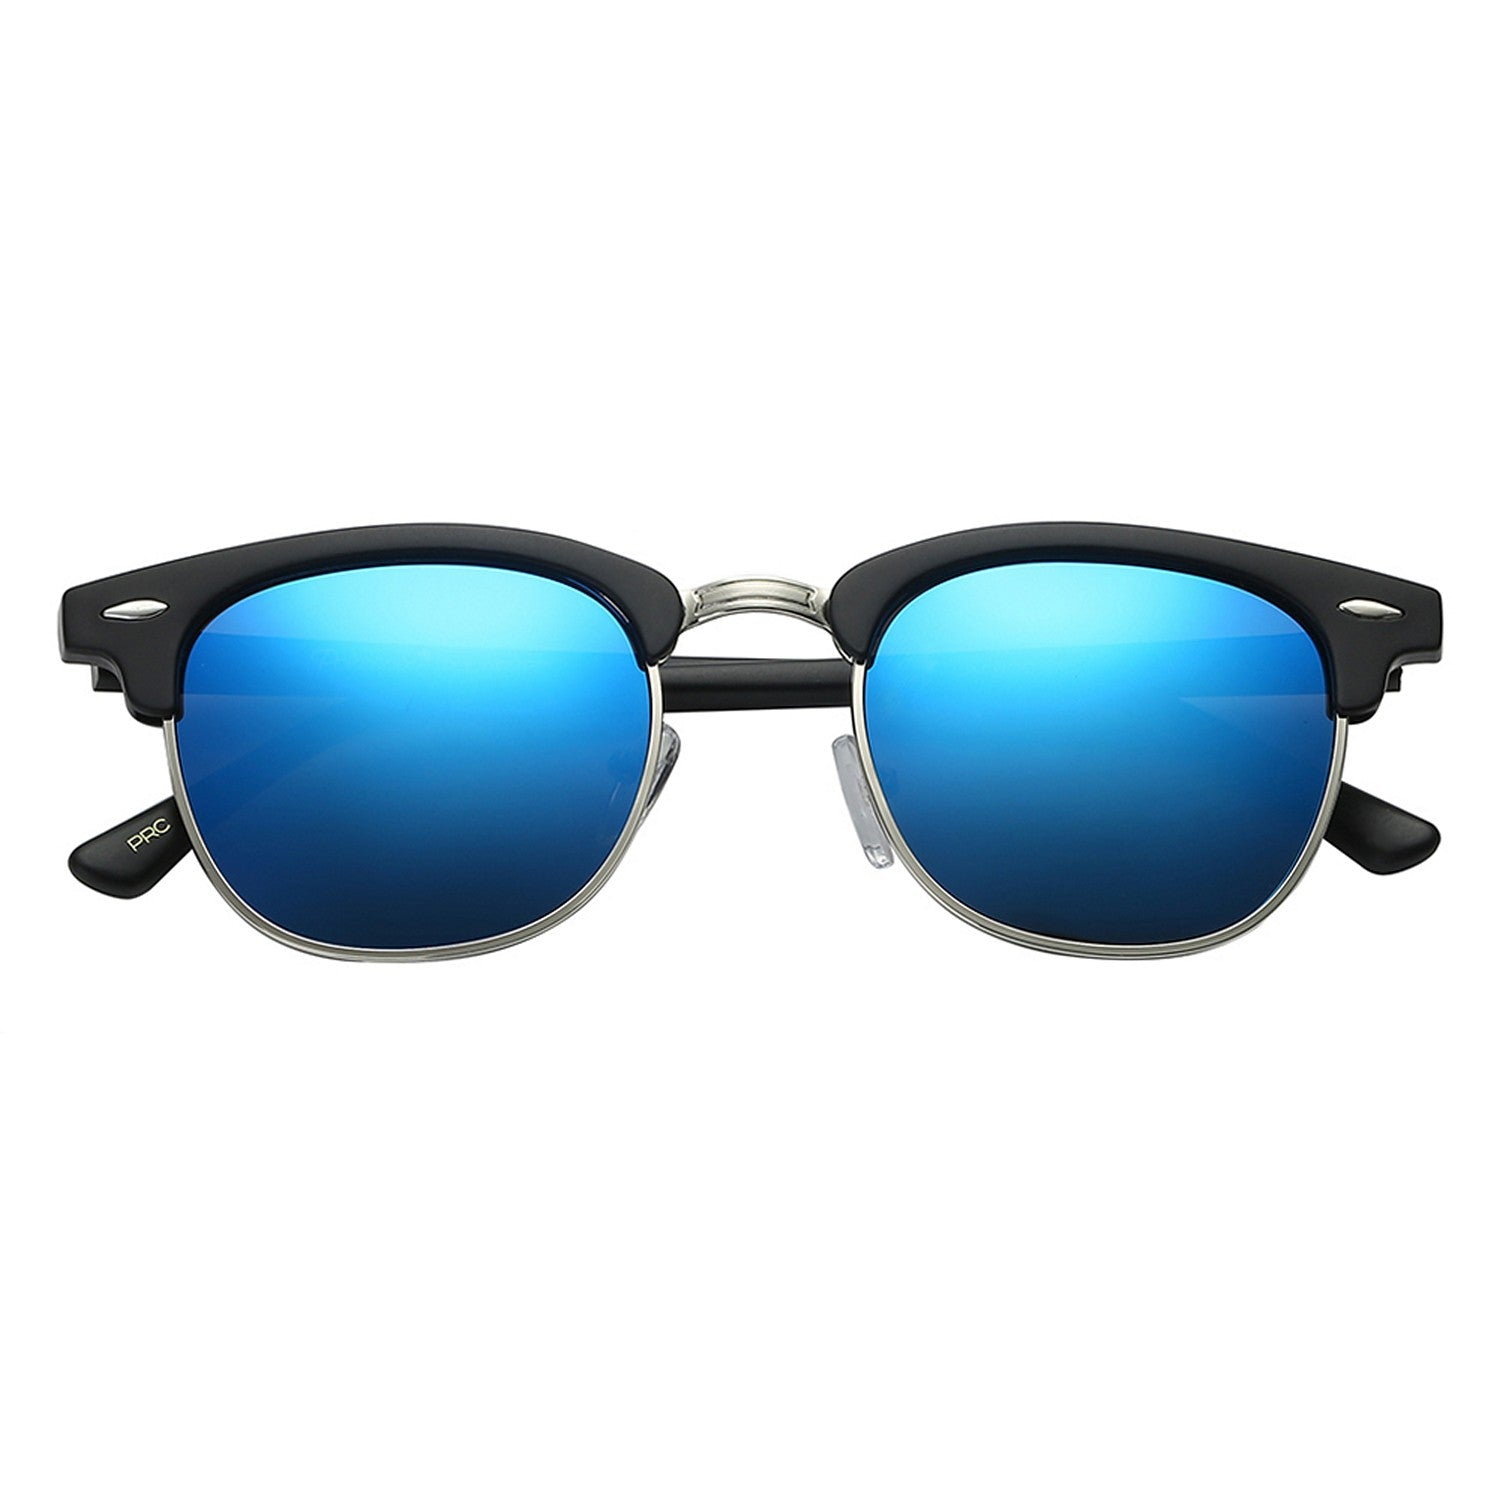 Polarspex Polarized Malcom Half Frame Semi-Rimless Style Unisex Sunglasses with Matte Black Frames and Ice Blue Lenses